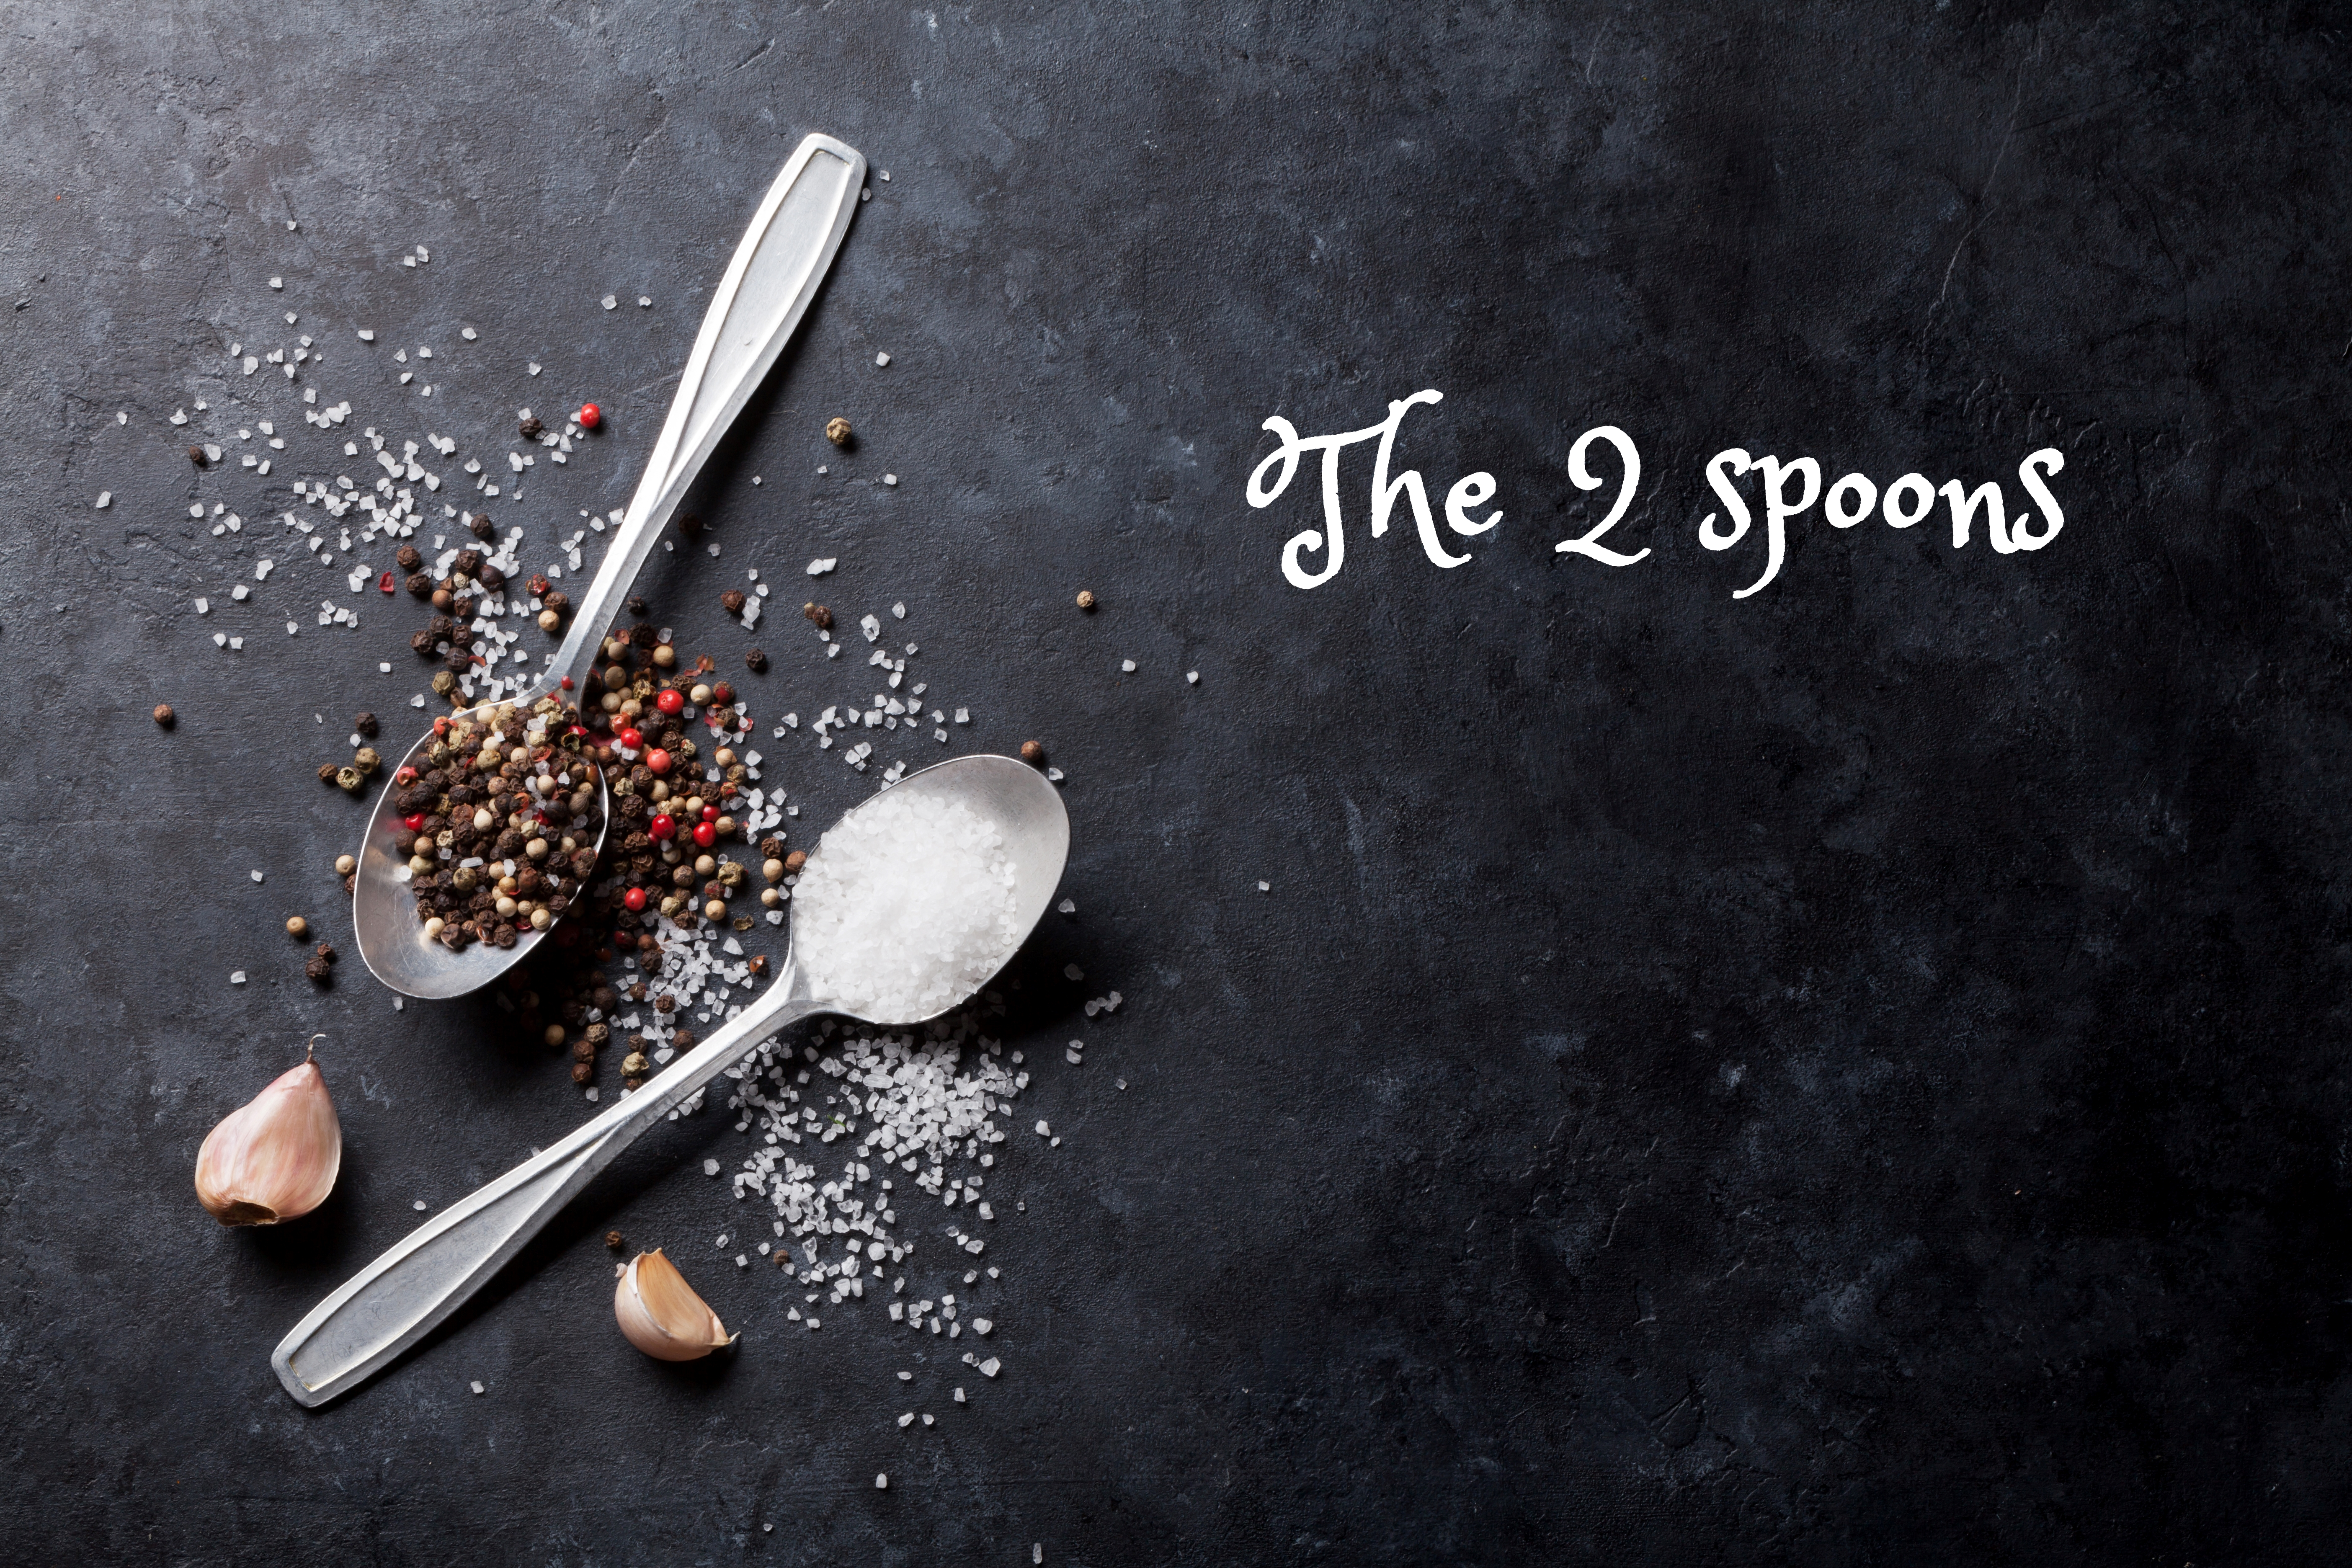 The 2 Spoons